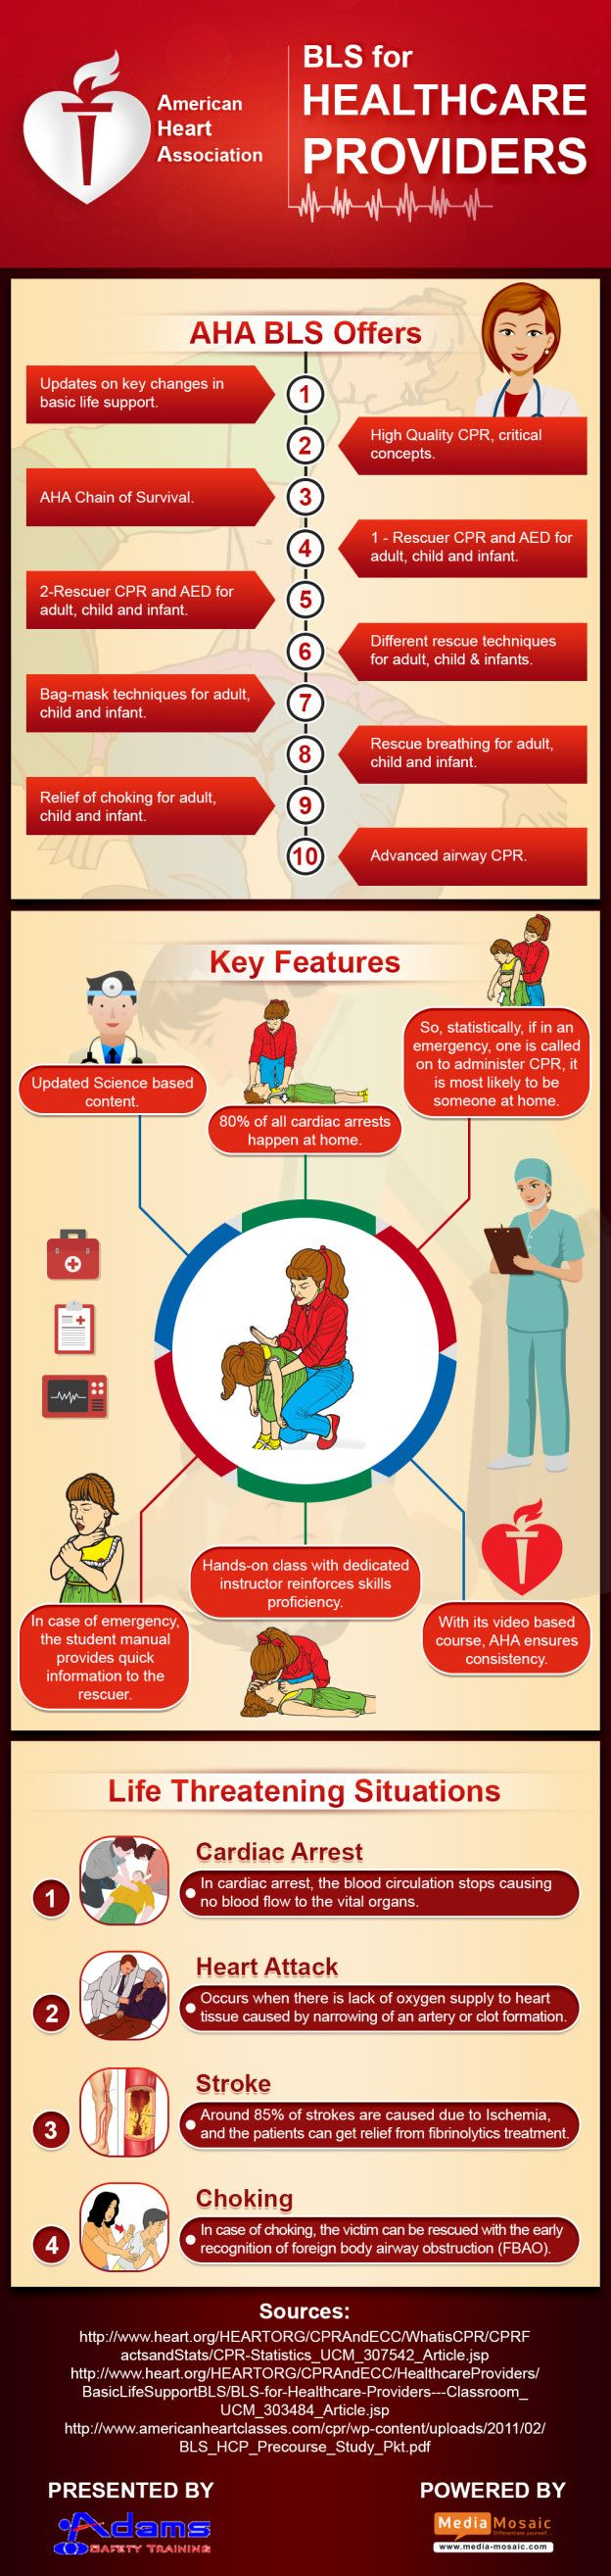 Cpr recertification online cpr training classes courses and cpr recertification online cpr training classes courses and first aid certification online cpraedcourse american health care academy pinterest 1betcityfo Gallery